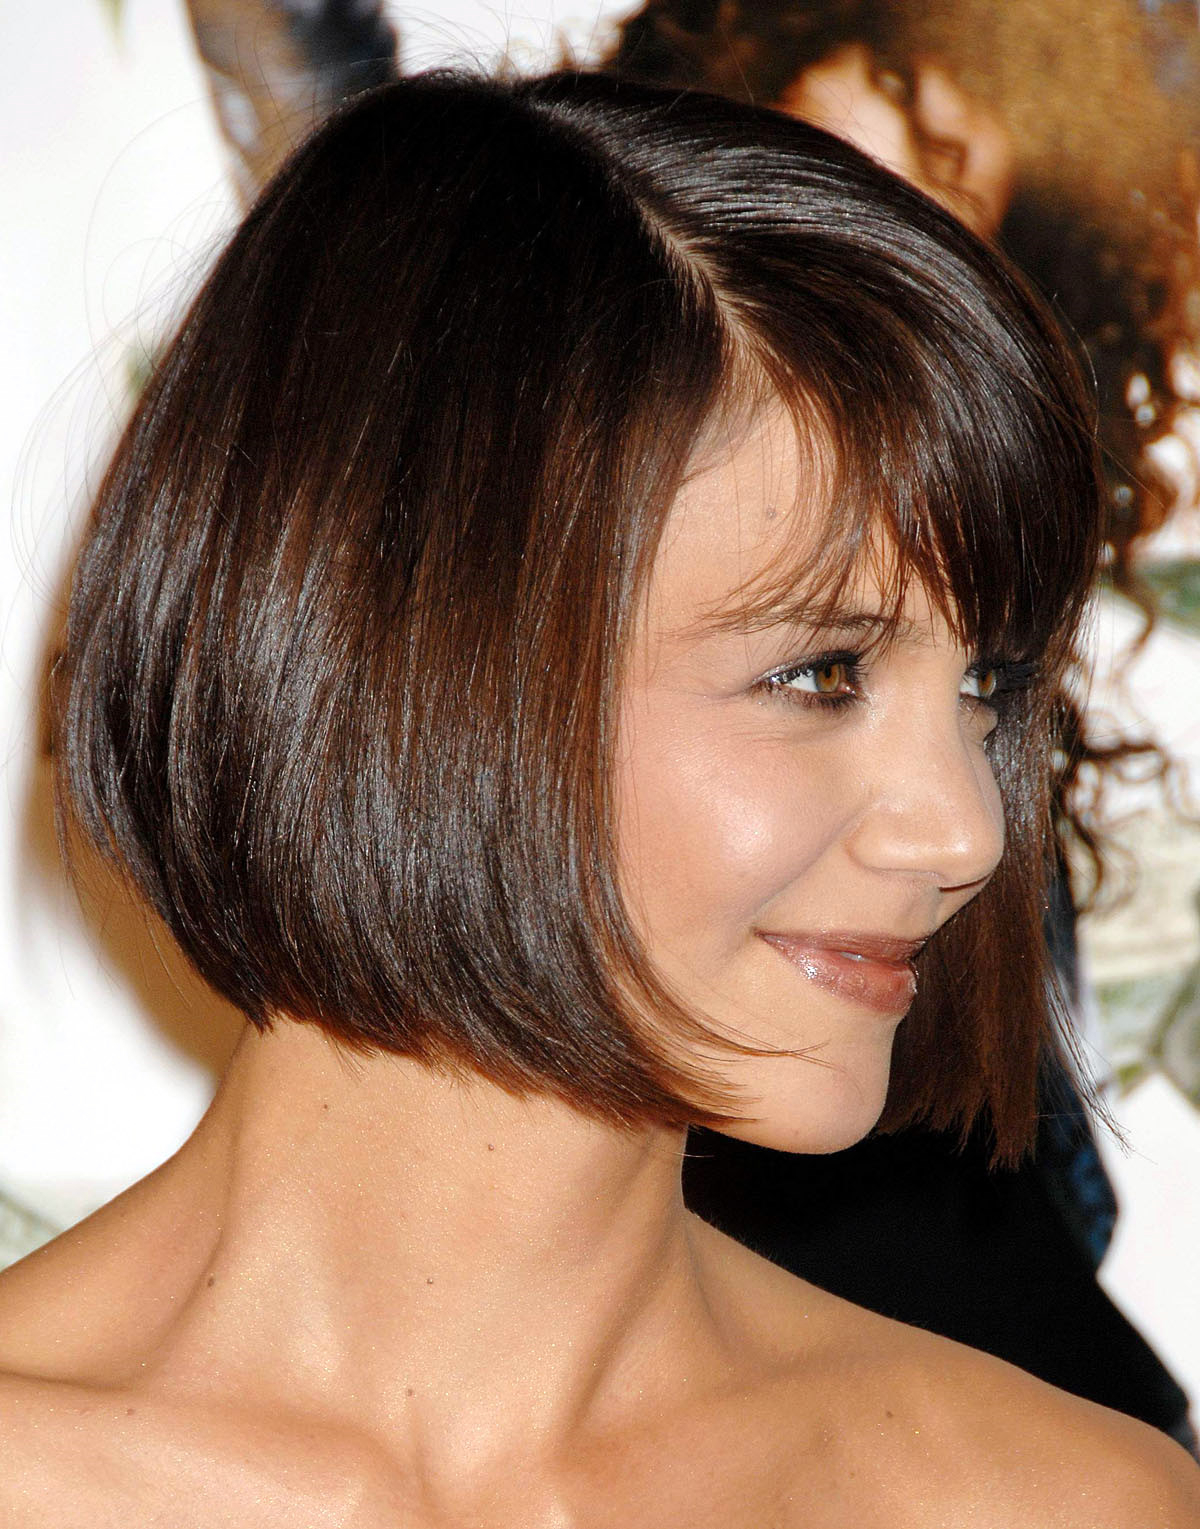 The A Shaped Bob Haircut Touching The Chin And The Slanting Intended For Most Up To Date Simple, Chic And Bobbed Hairstyles (View 15 of 20)